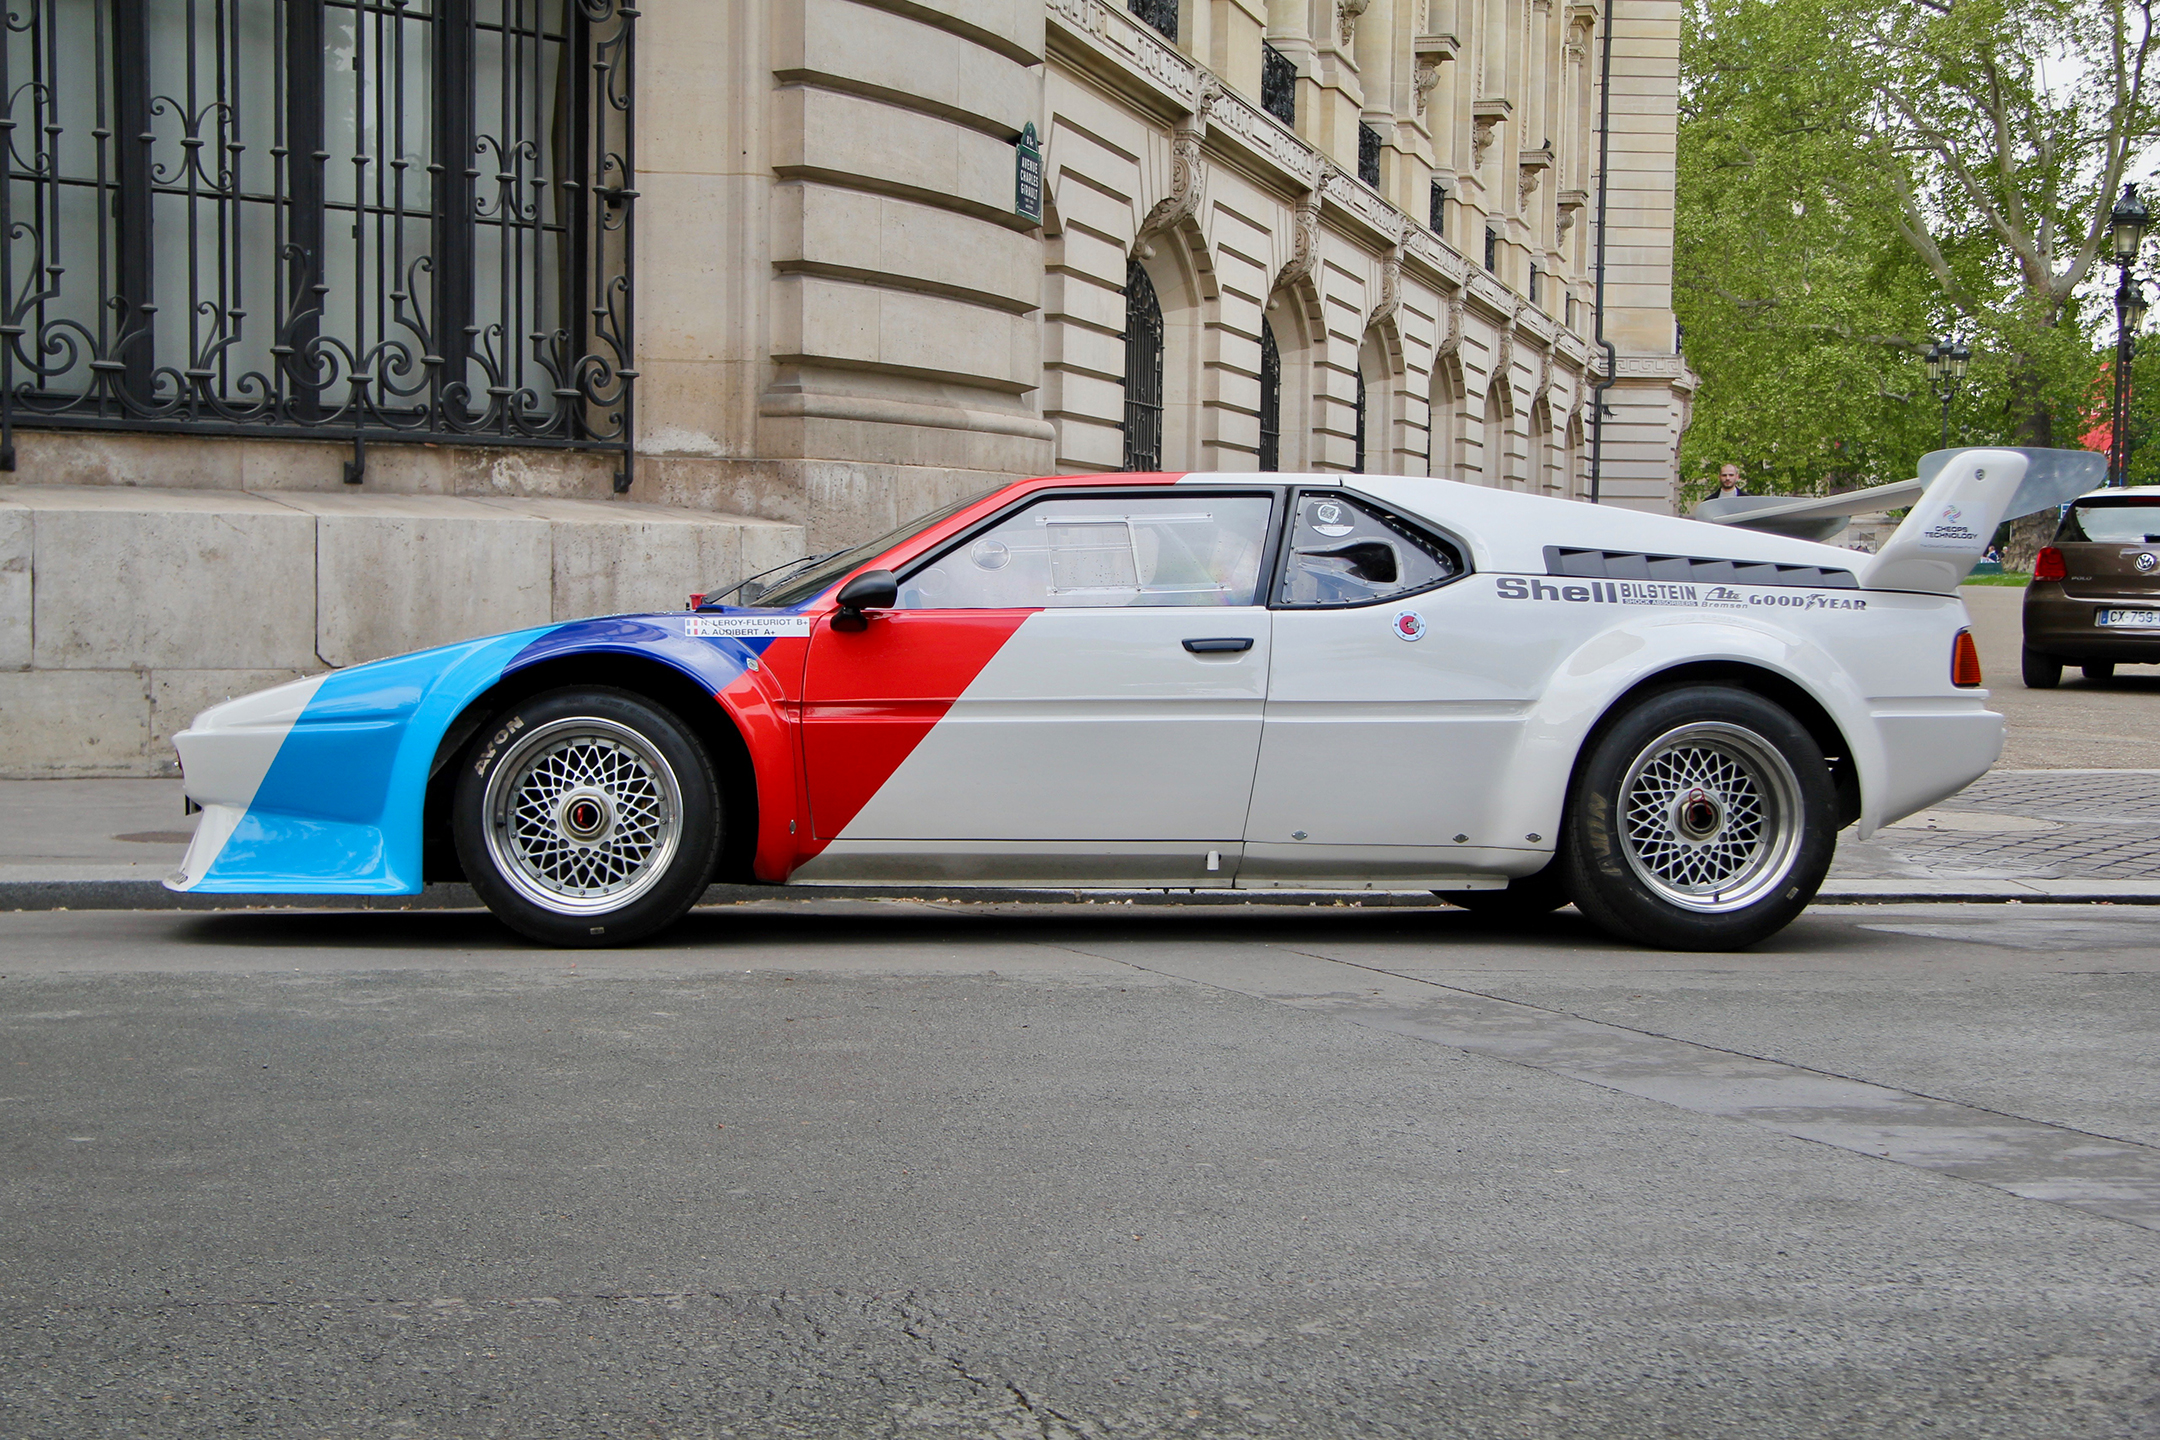 BMW M1 livrée Procar 1979 - side-face - aux abords du Grand Palais - Tour Auto 2019 - photo Ludo Ferrari